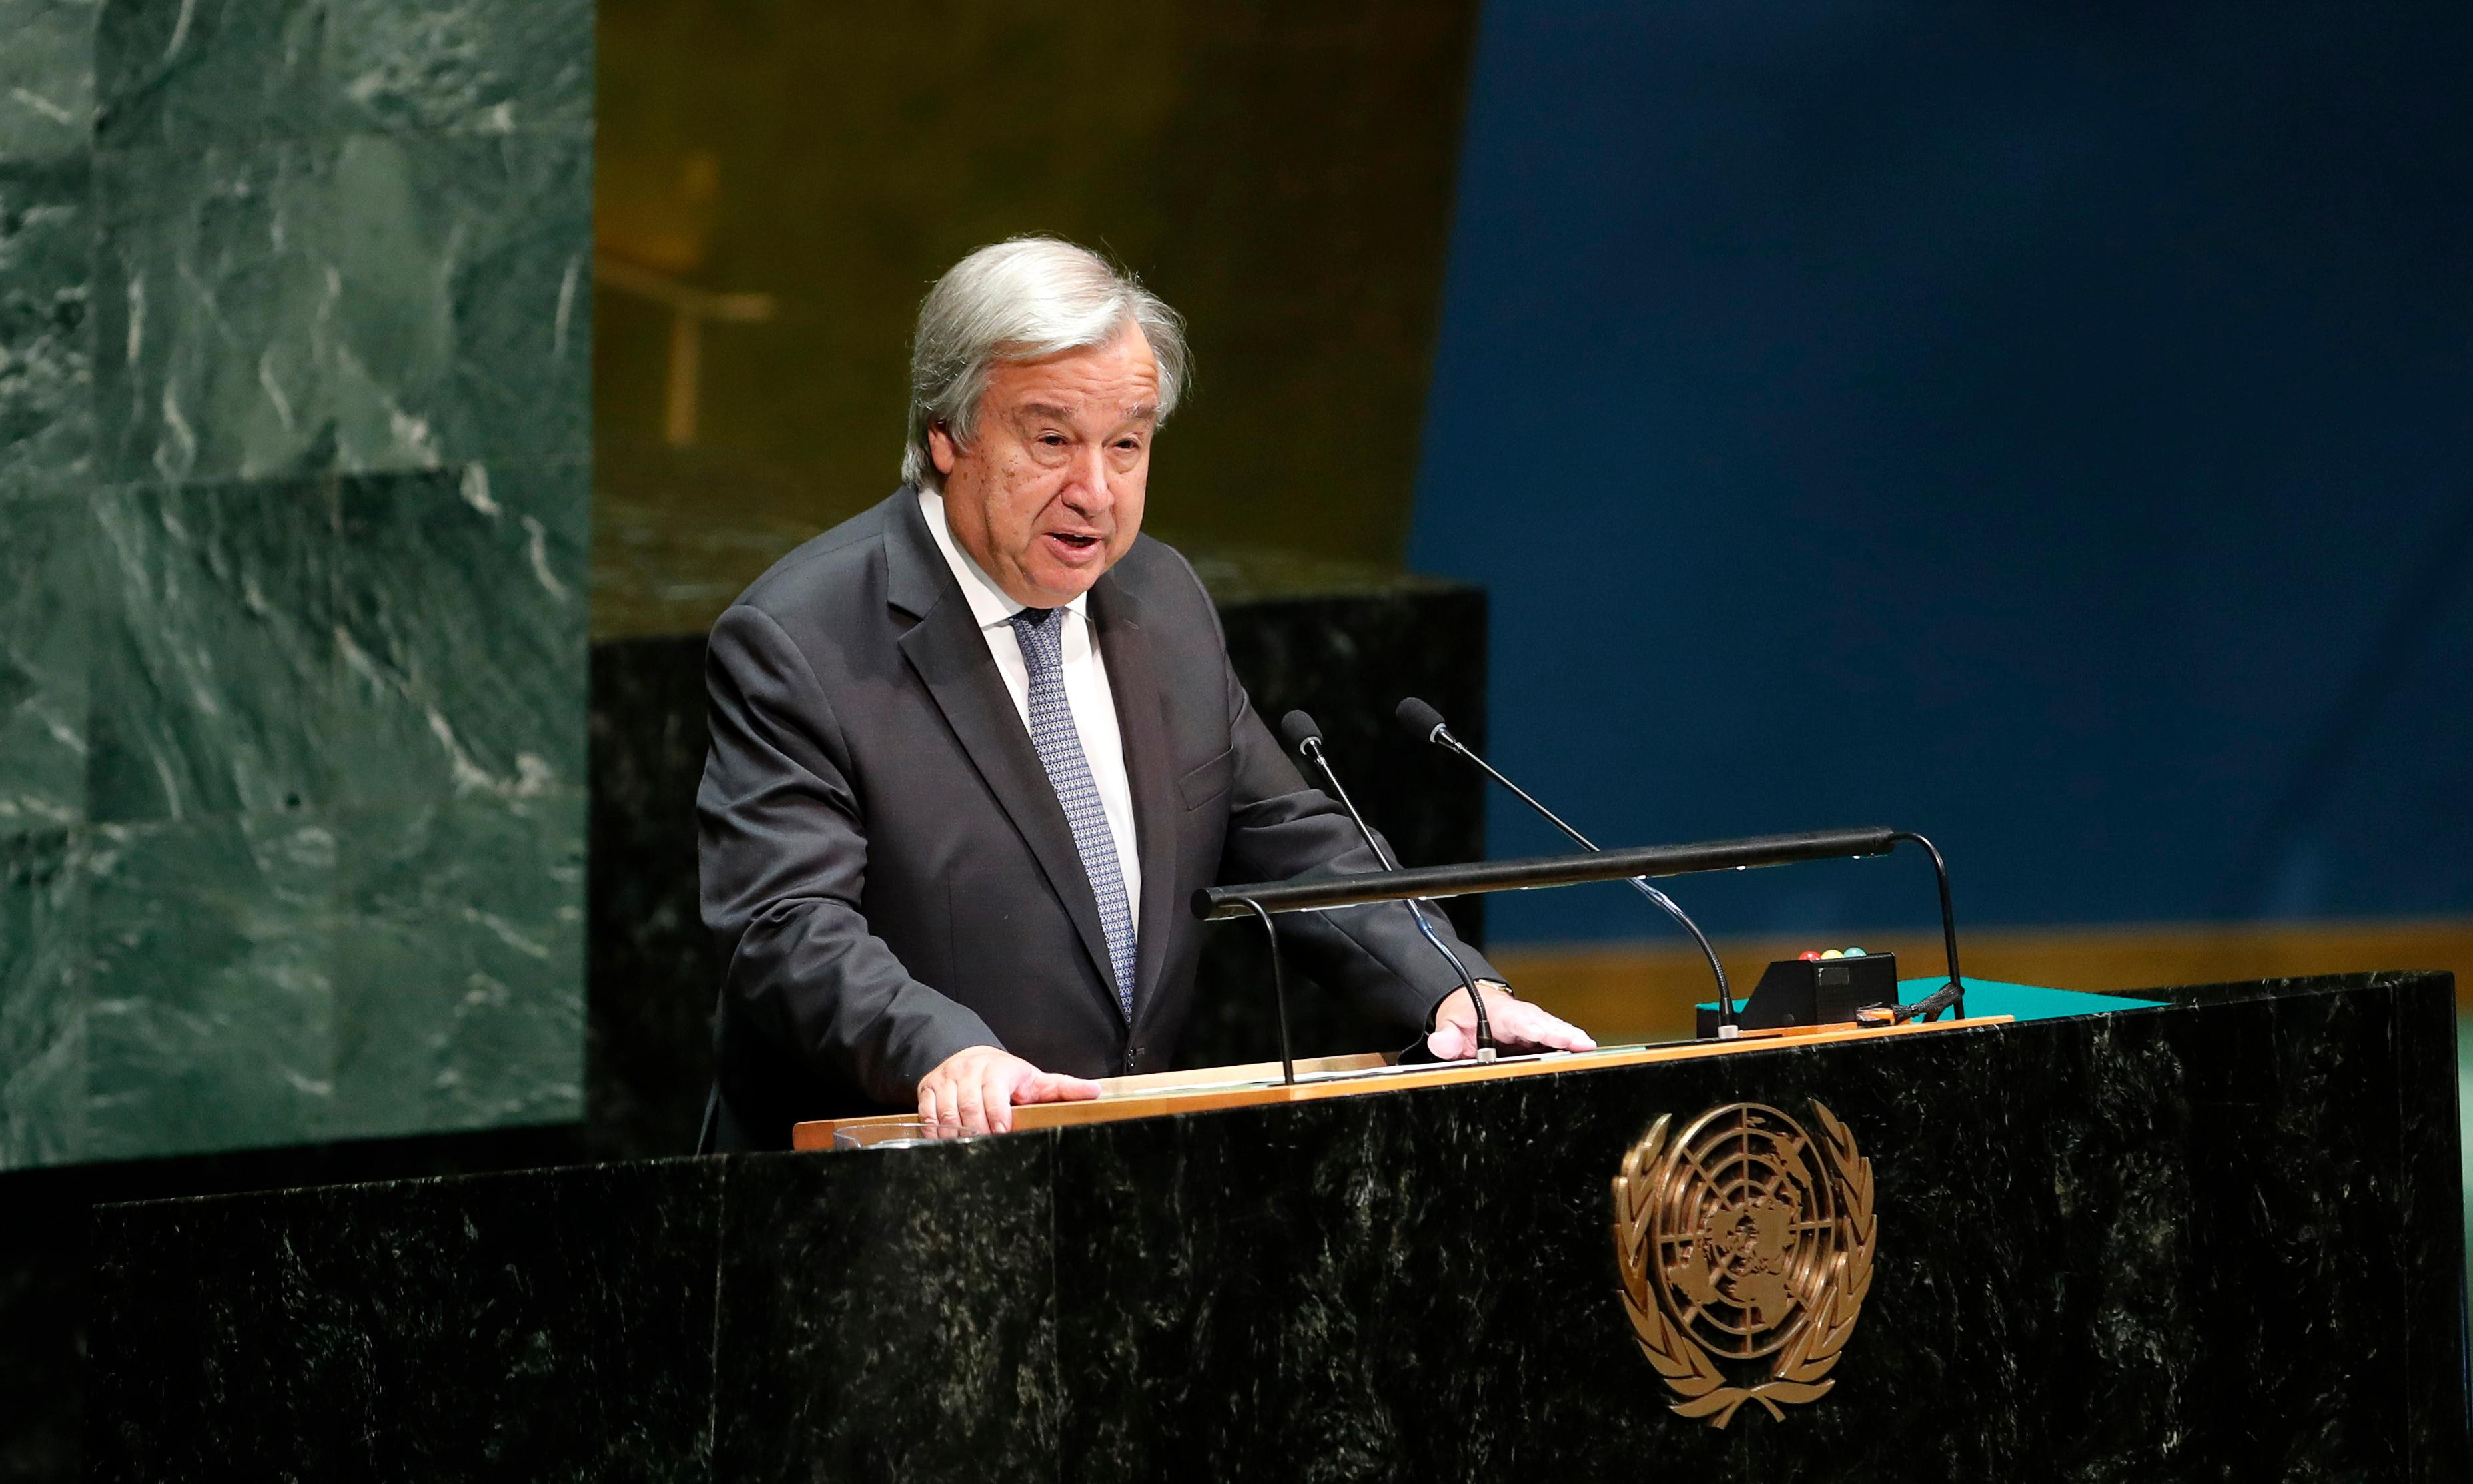 'We're losing the race': UN secretary general calls climate change an 'emergency'